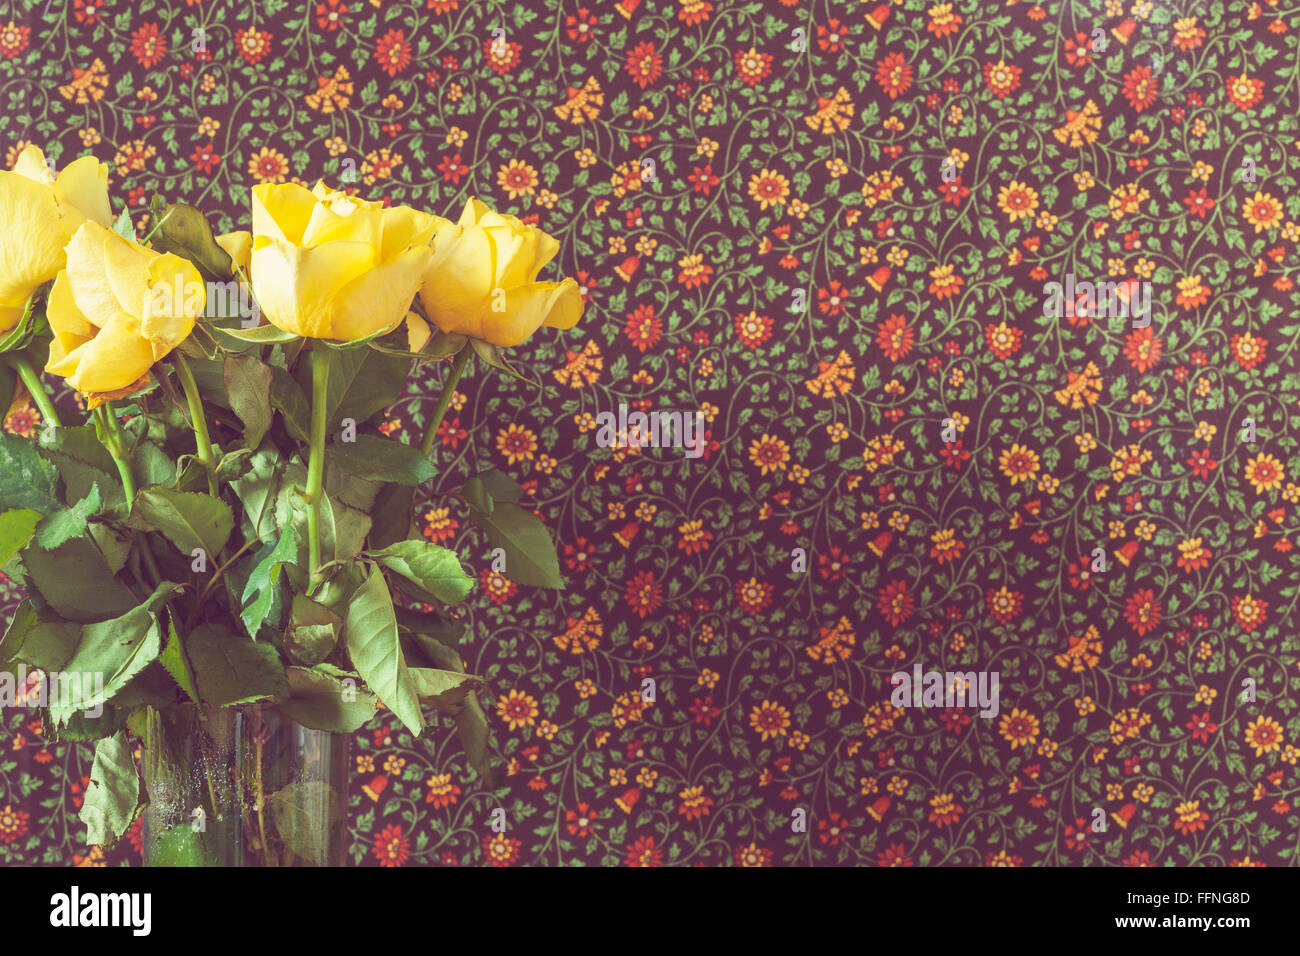 Detail of yellow roses against a brown vintage background - Stock Image